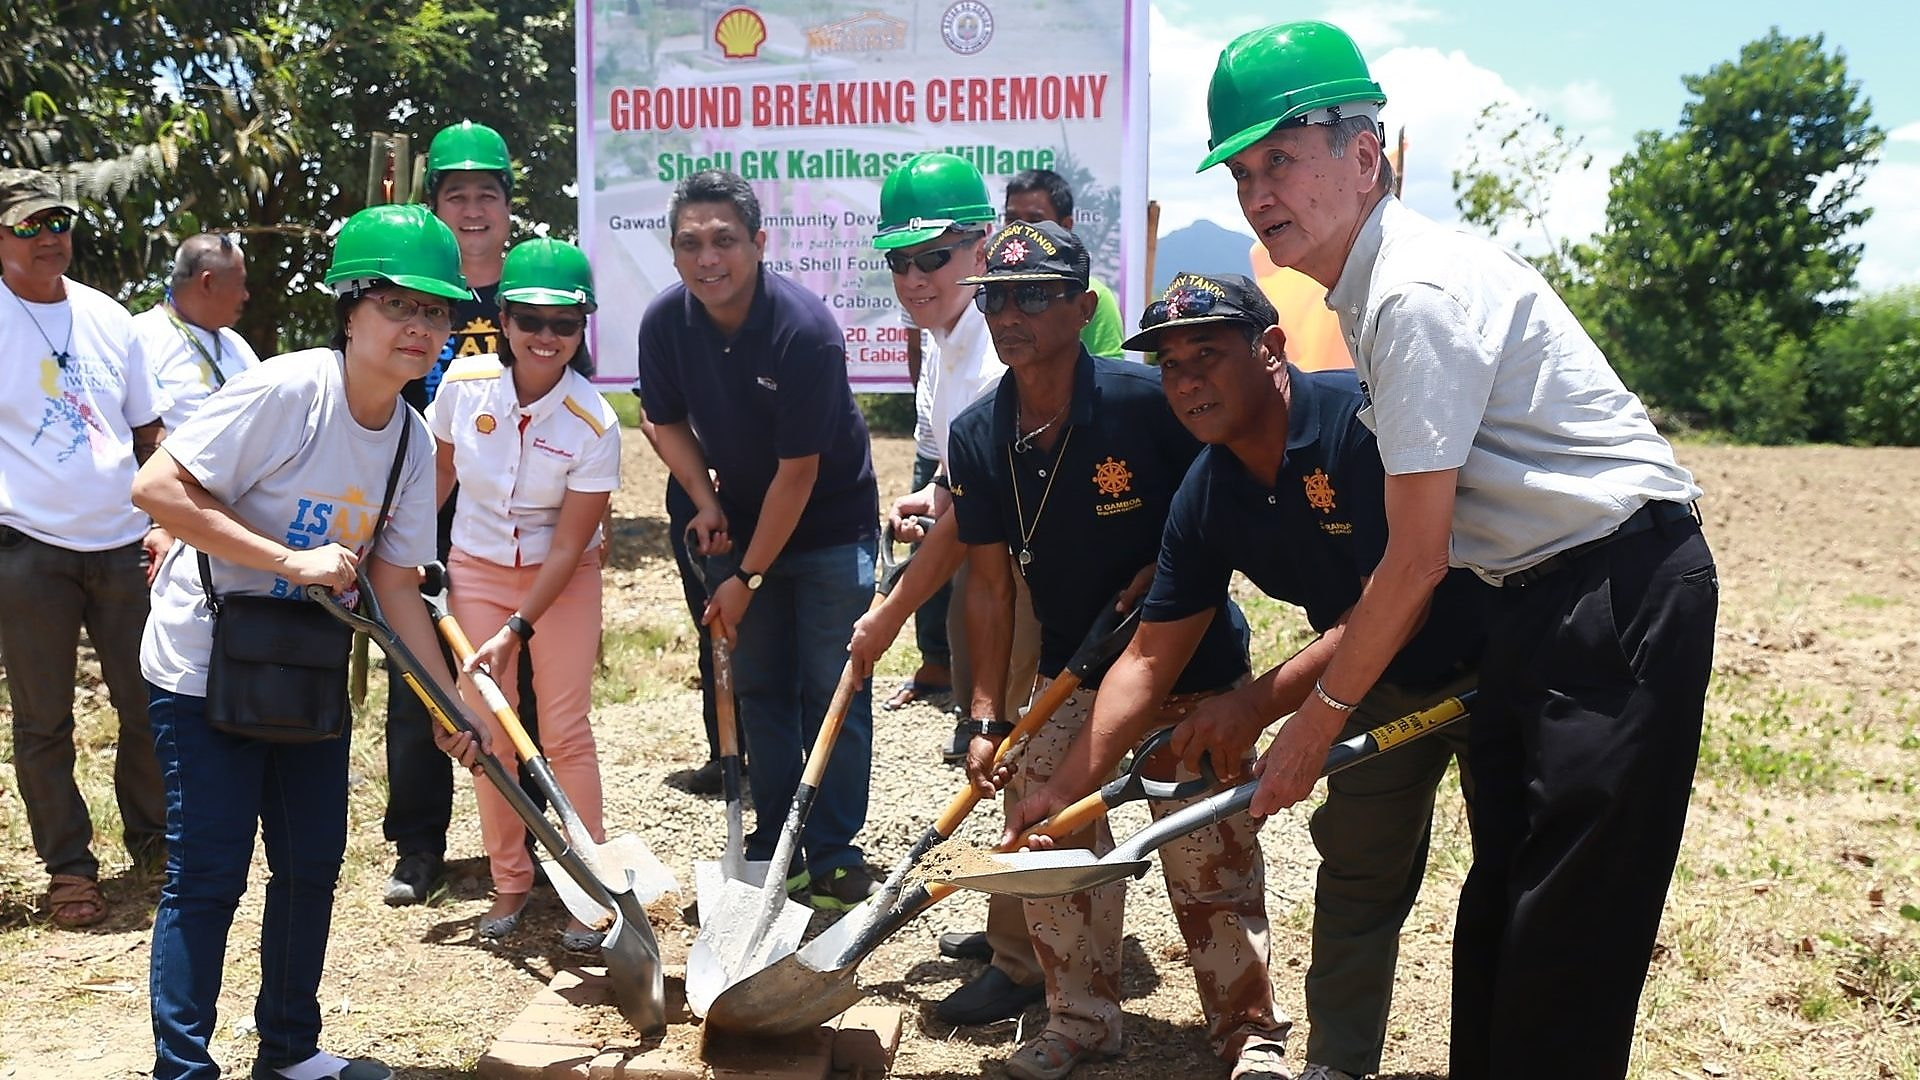 Shell-Gawad Kalinga Kalikasan Village ground breaking ceremony